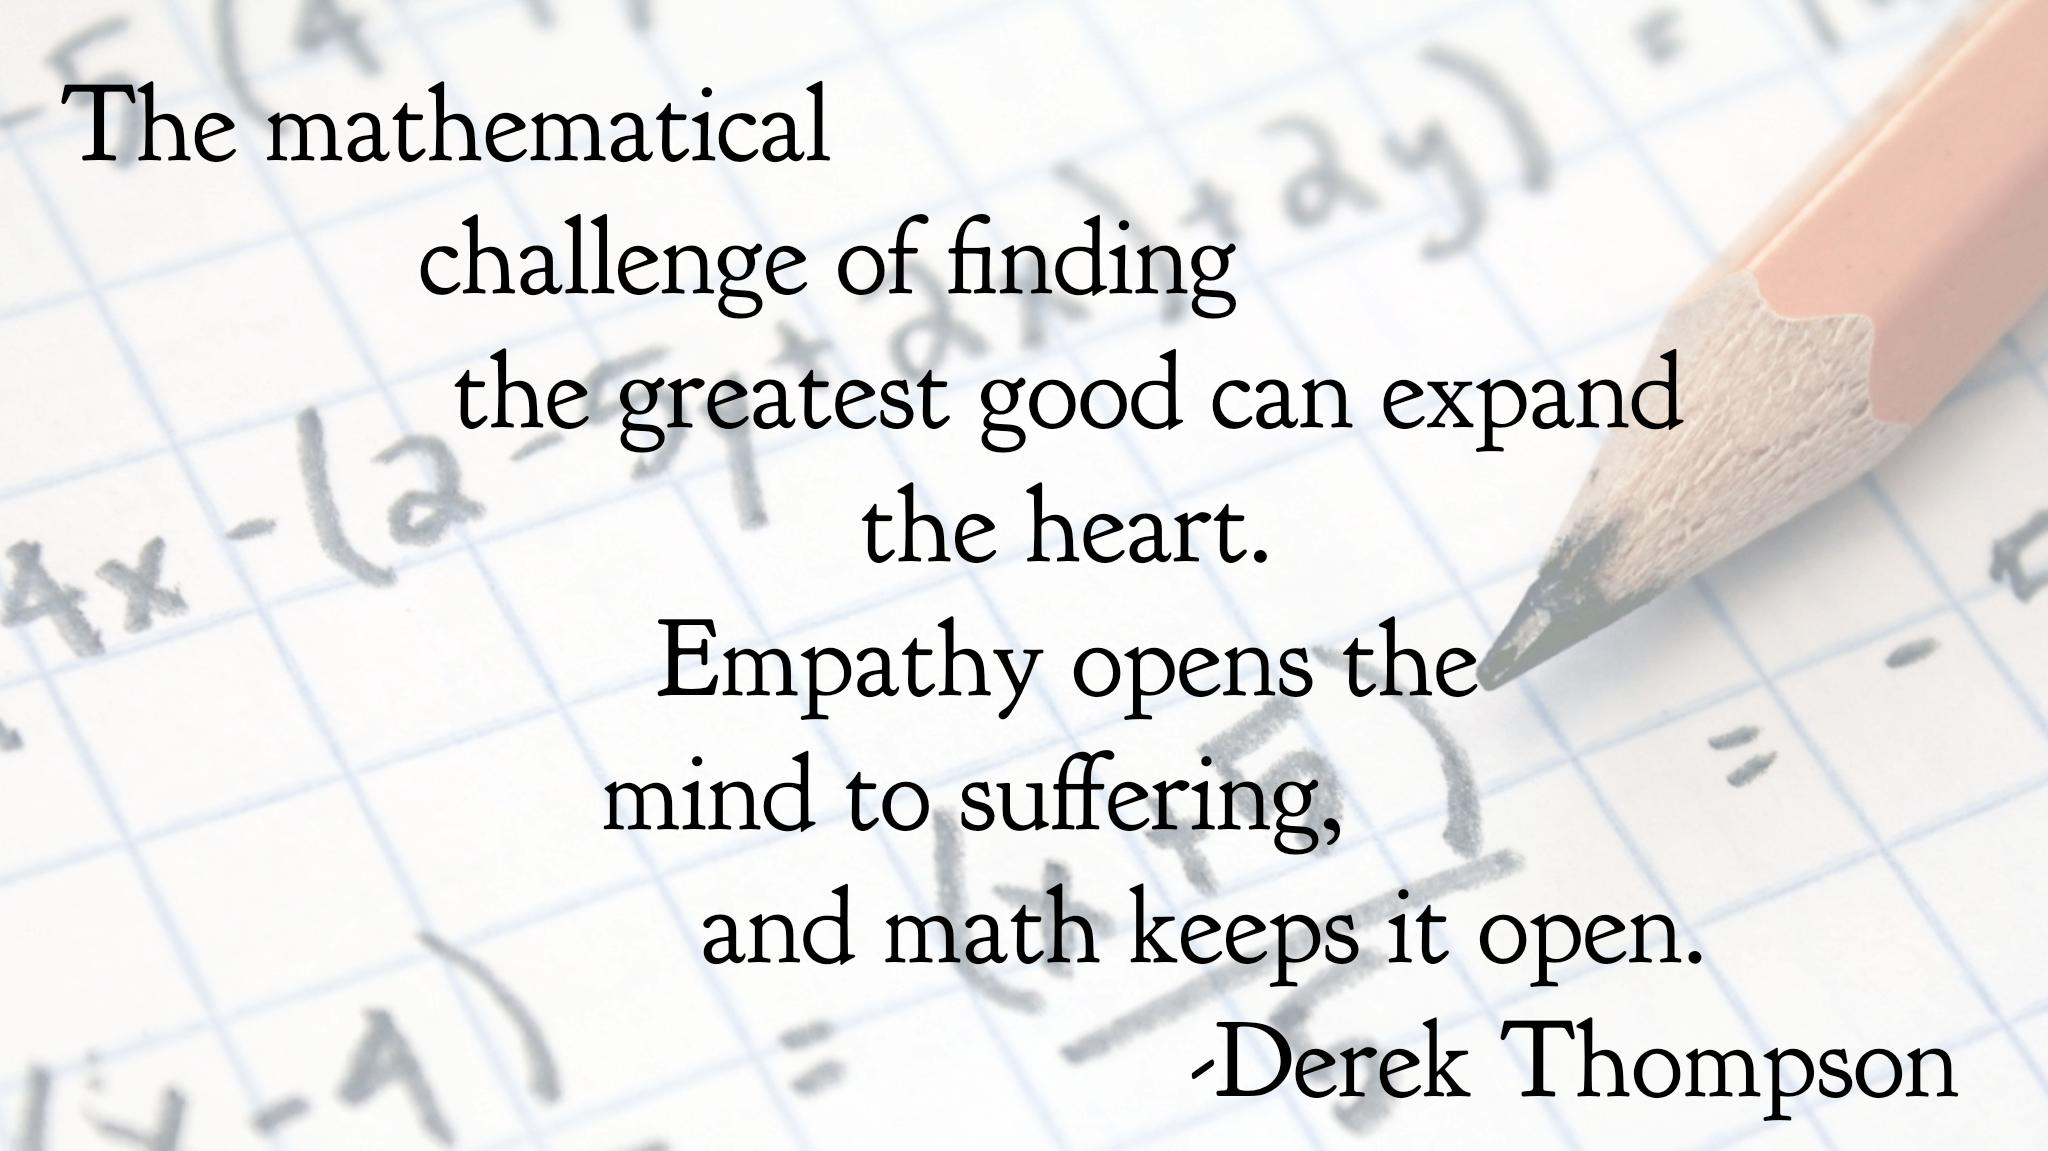 """The mathematical challenge of finding the greatest good can expand the heart. Empathy opens the mind to suffering, and math keeps it open."" -Derek Thompson [2048×1151][OC]"